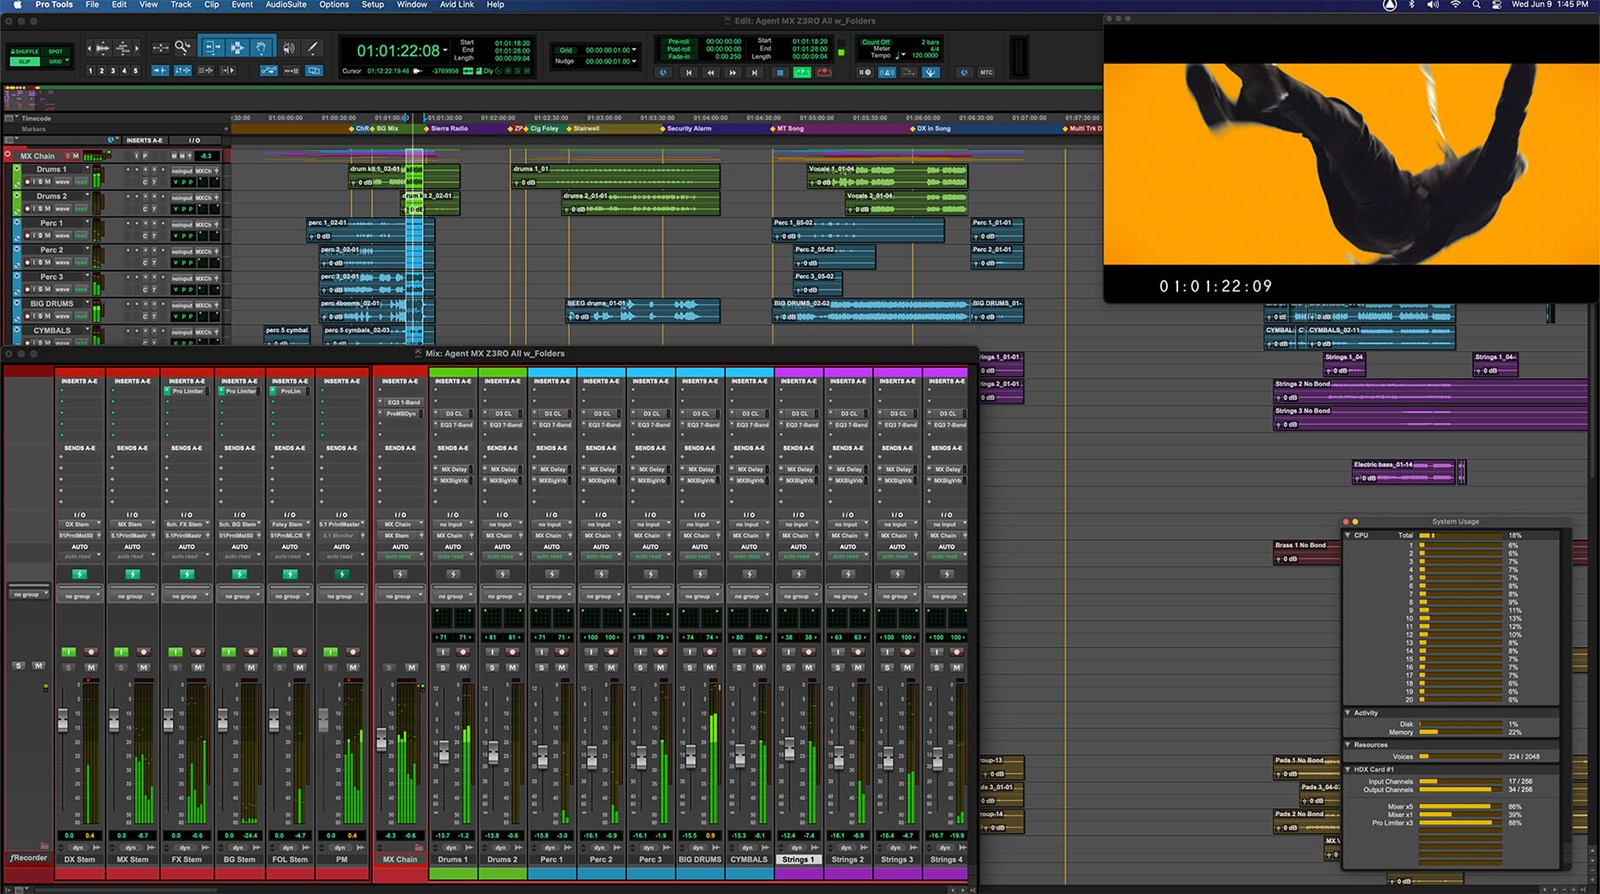 Pro Tools UI showing audio post workflow with HEVC